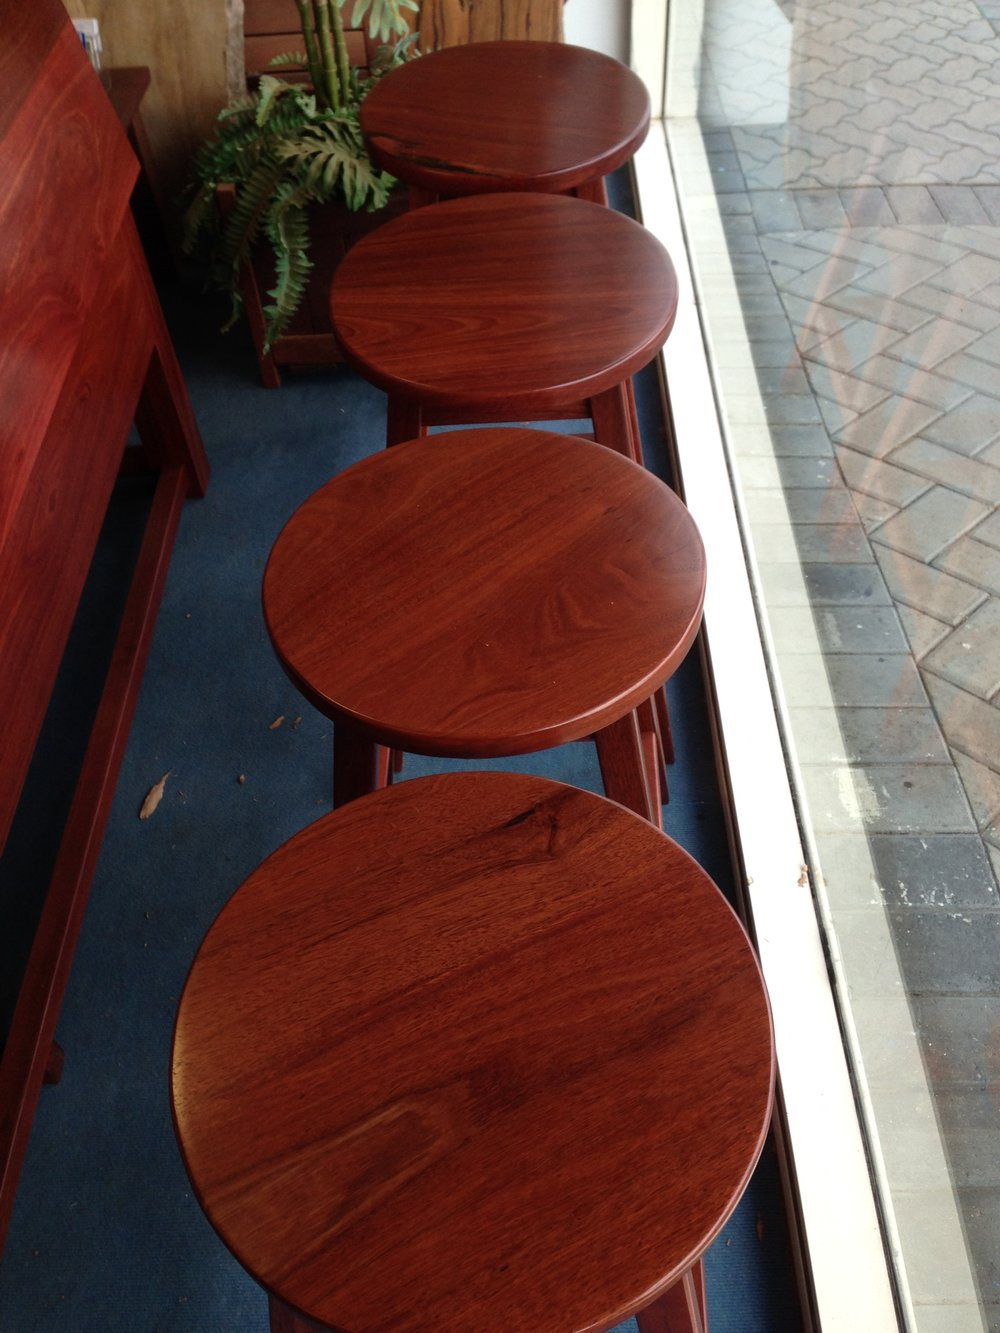 Spiteri bar stool swivel tops.JPG